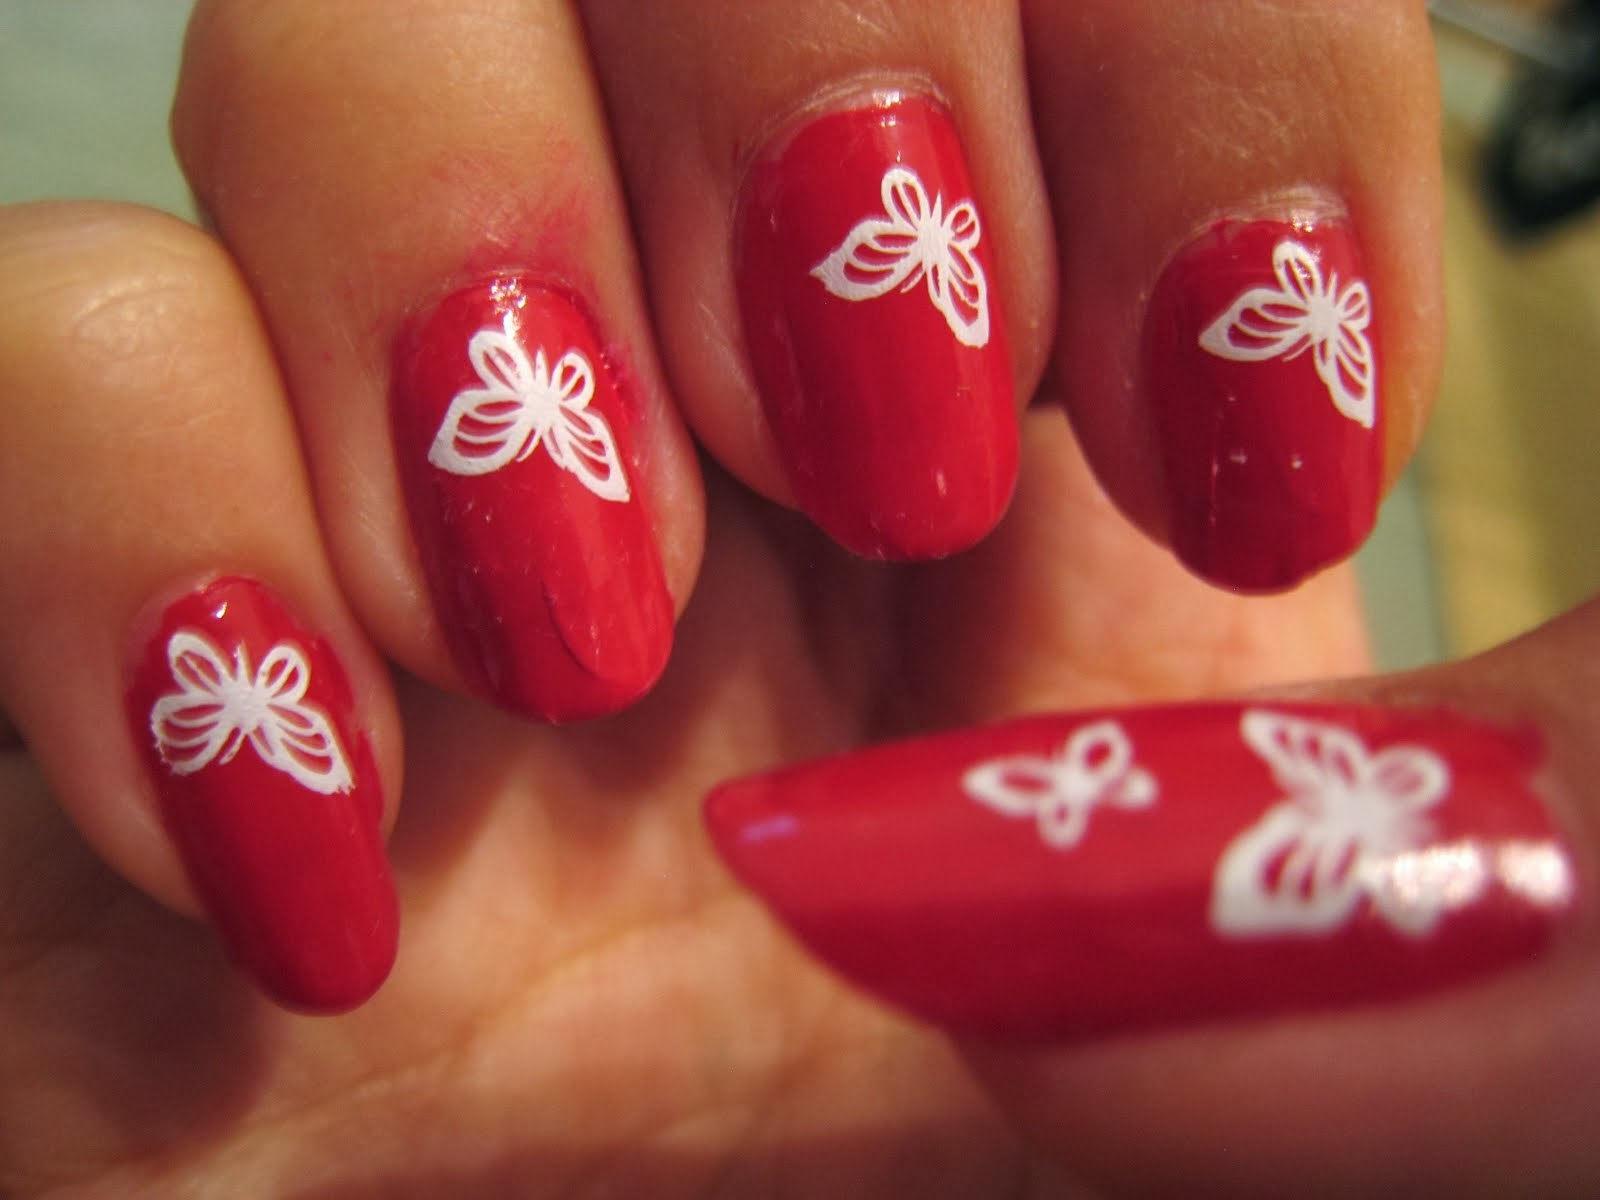 Butterfly Nail Art Designs With Dark Red - Stylpinch Beauty Arena